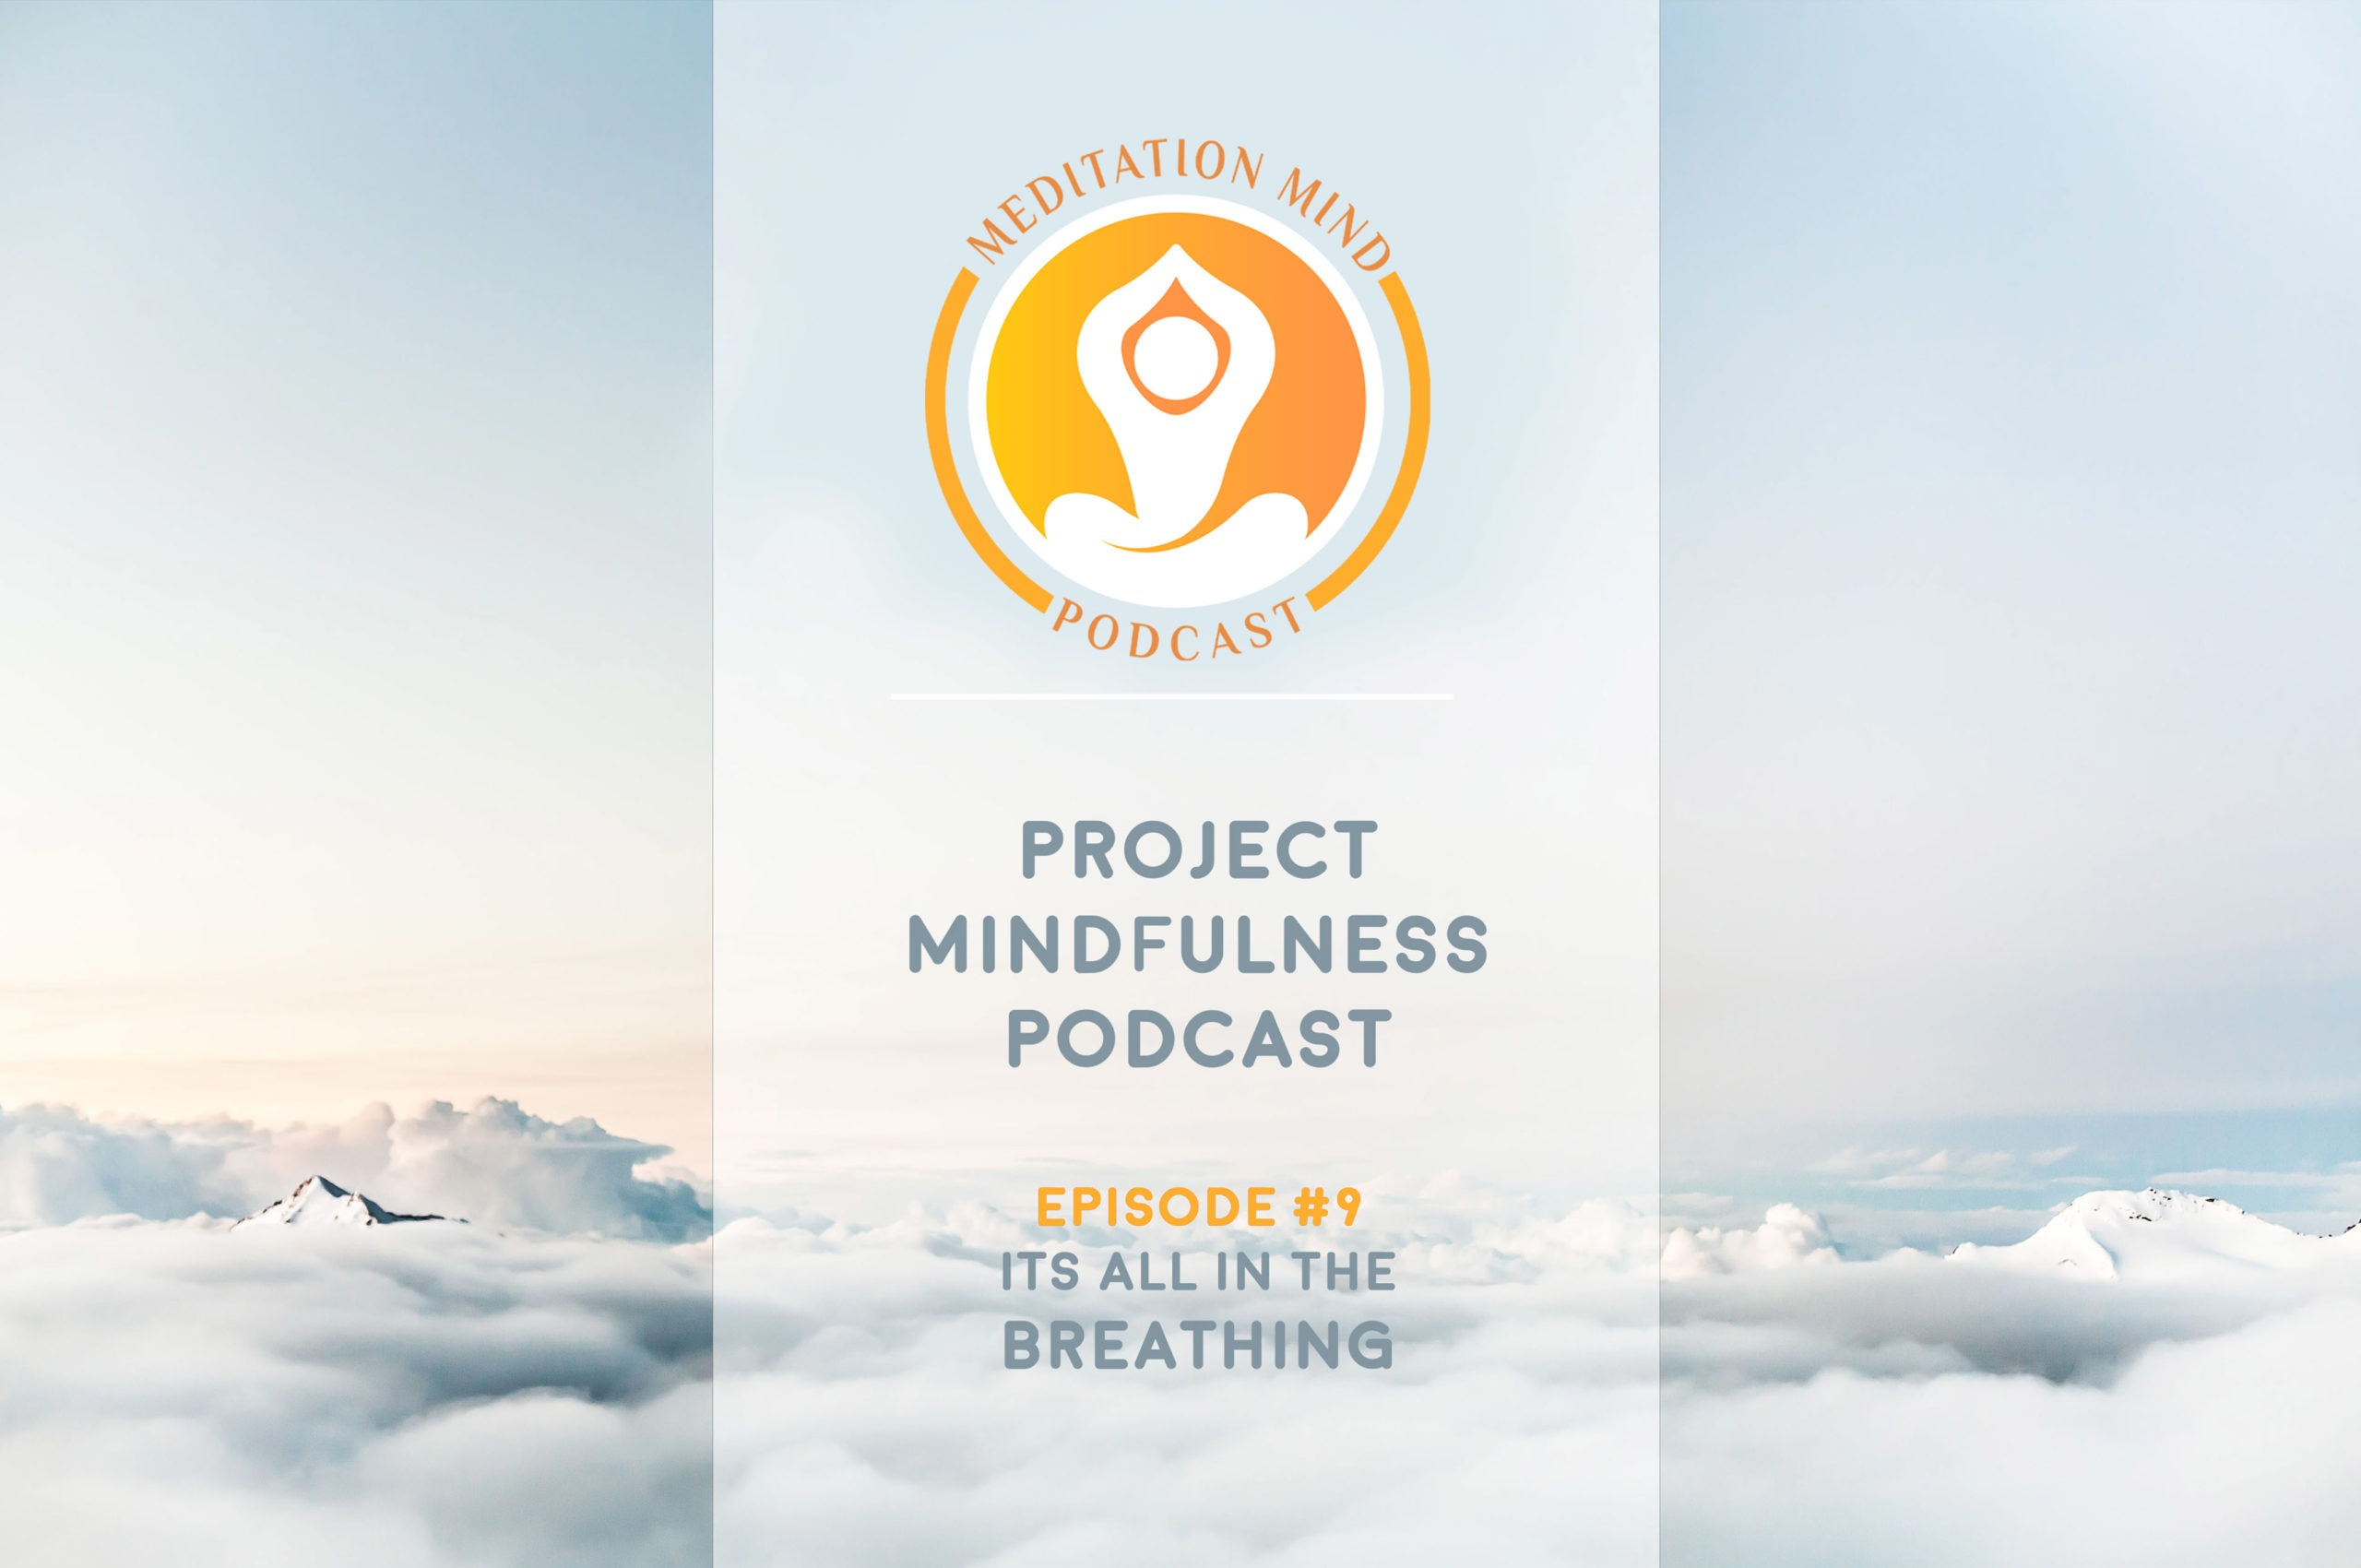 Dr. Brad Lichtenstein talks about various breathing techniques to reduce stress and anxiety